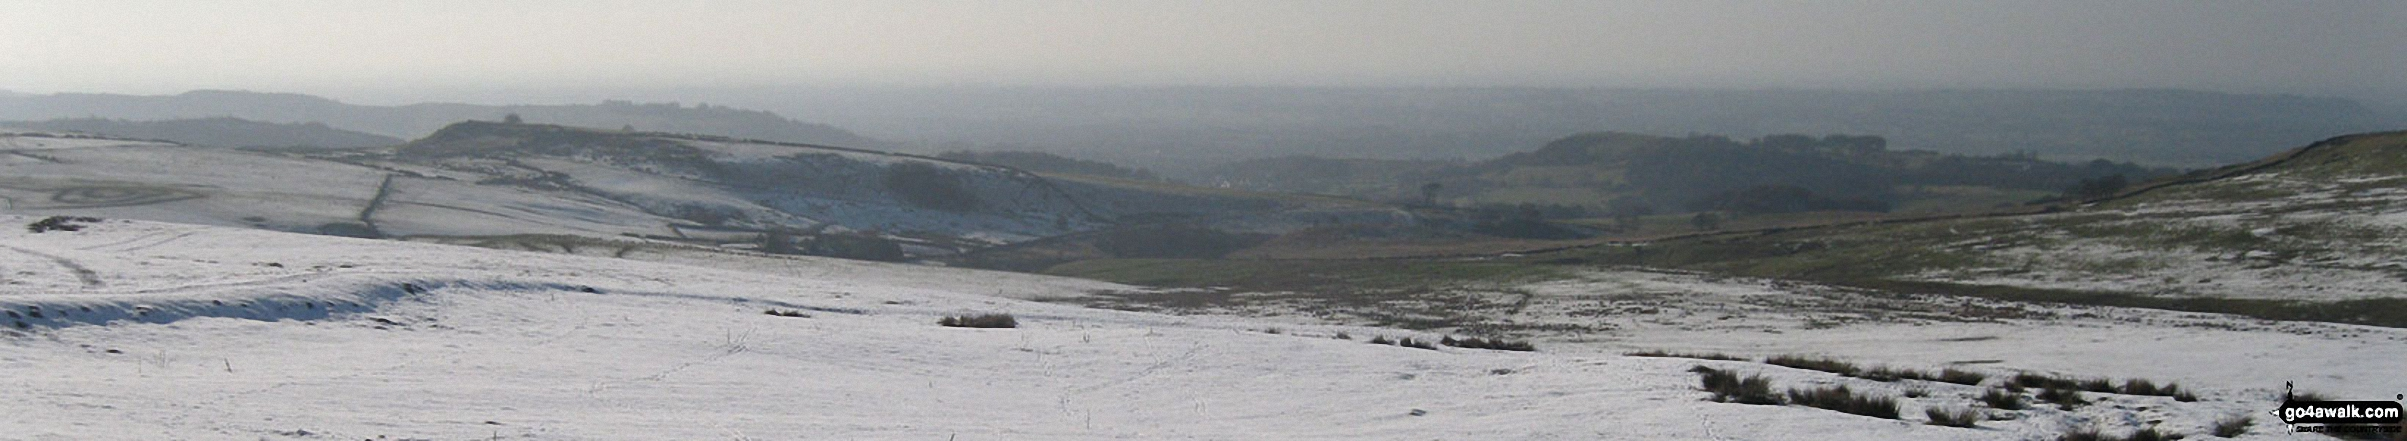 Looking South West from Sponds Hill in the snow